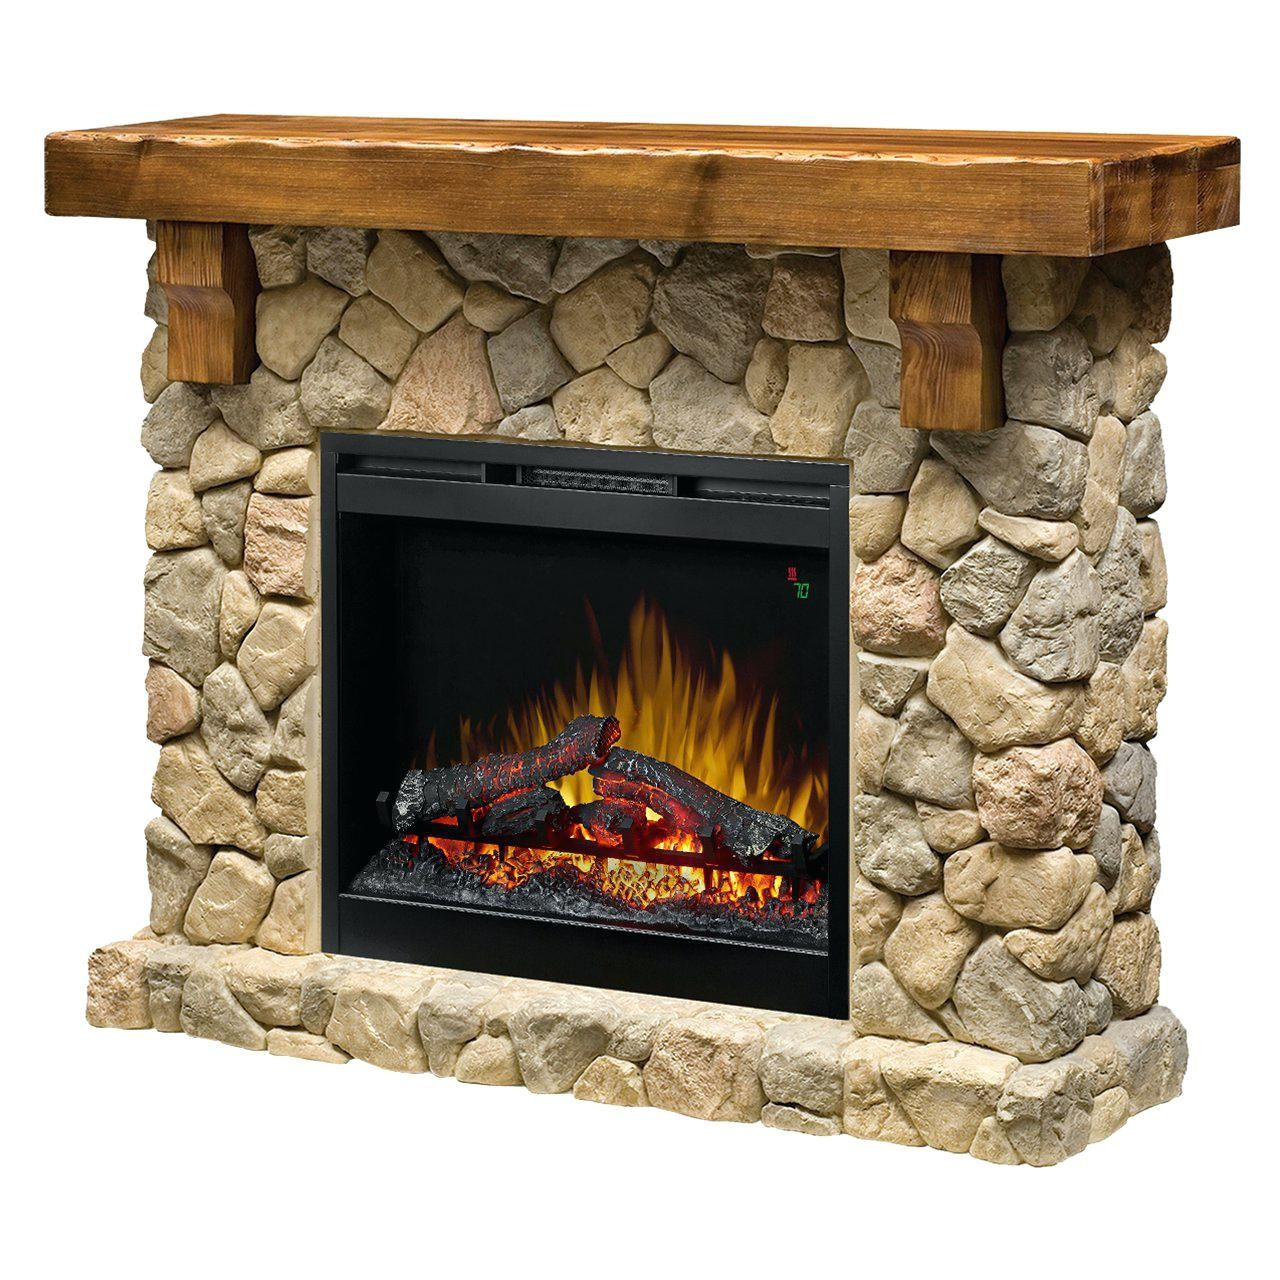 15 Dimplex Optimyst Electric Fireplace Reviews Selection Stone